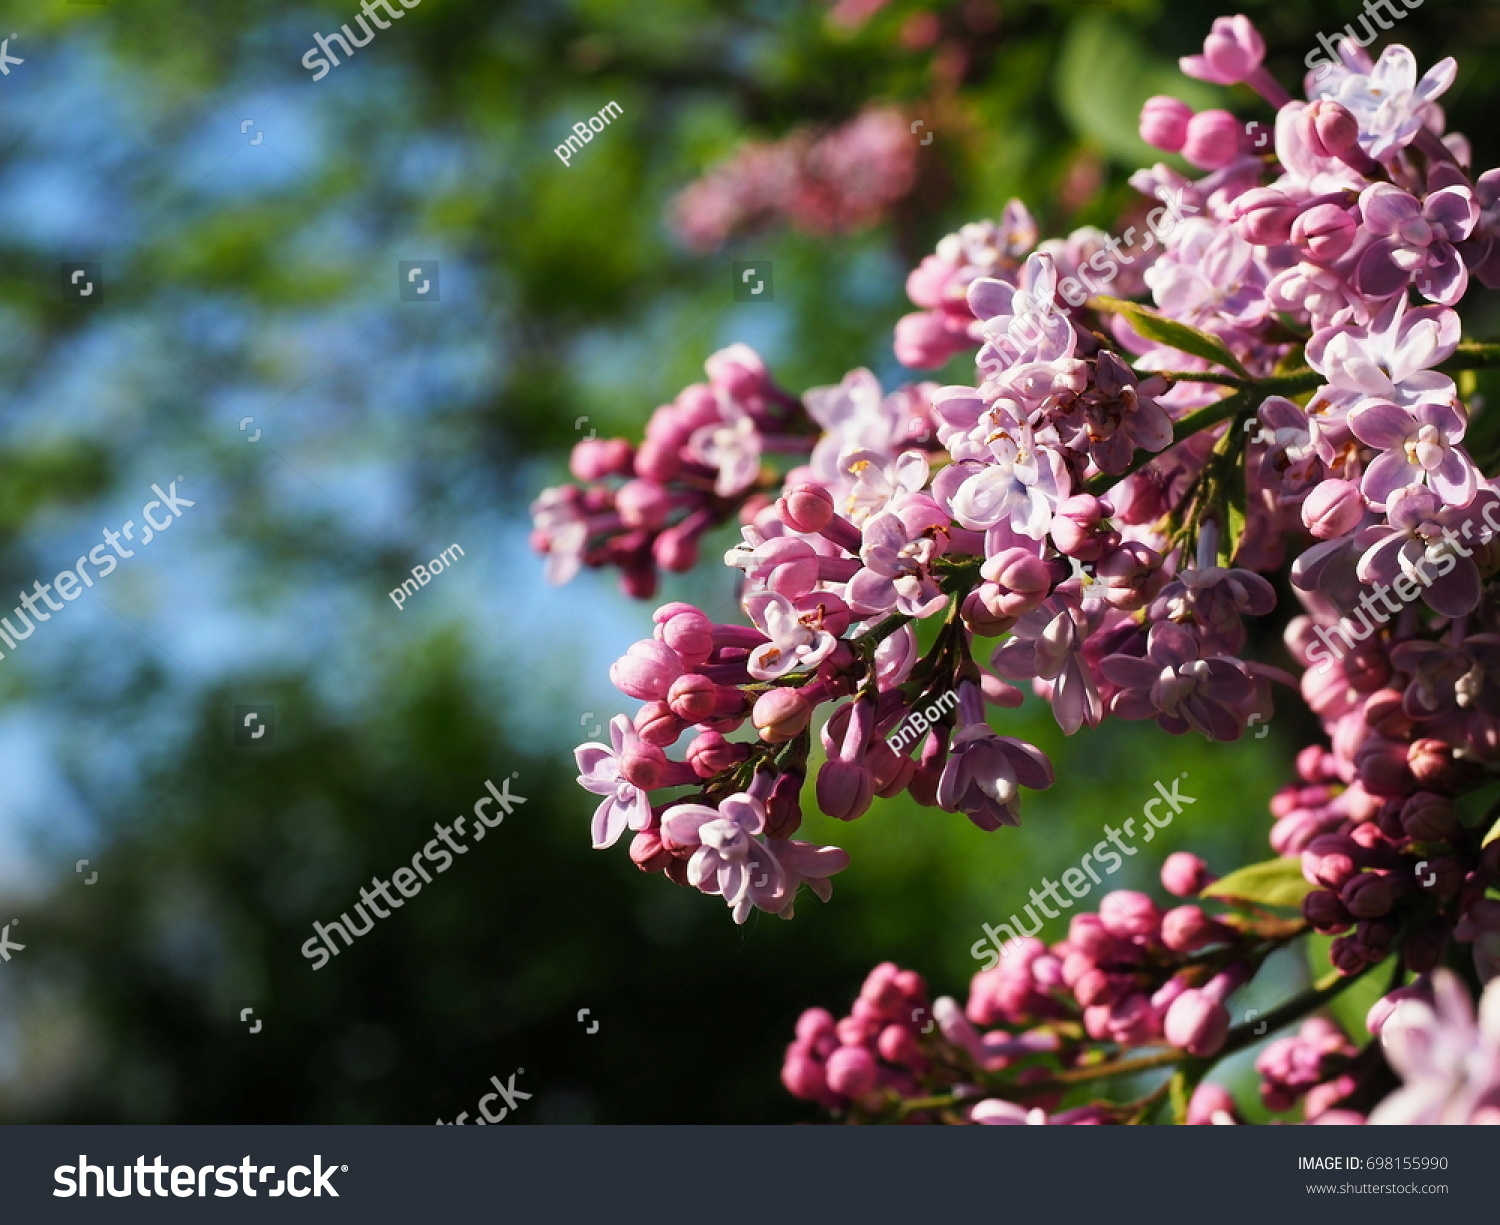 The Background From The Blooming Bushes Of The Lilac At The City